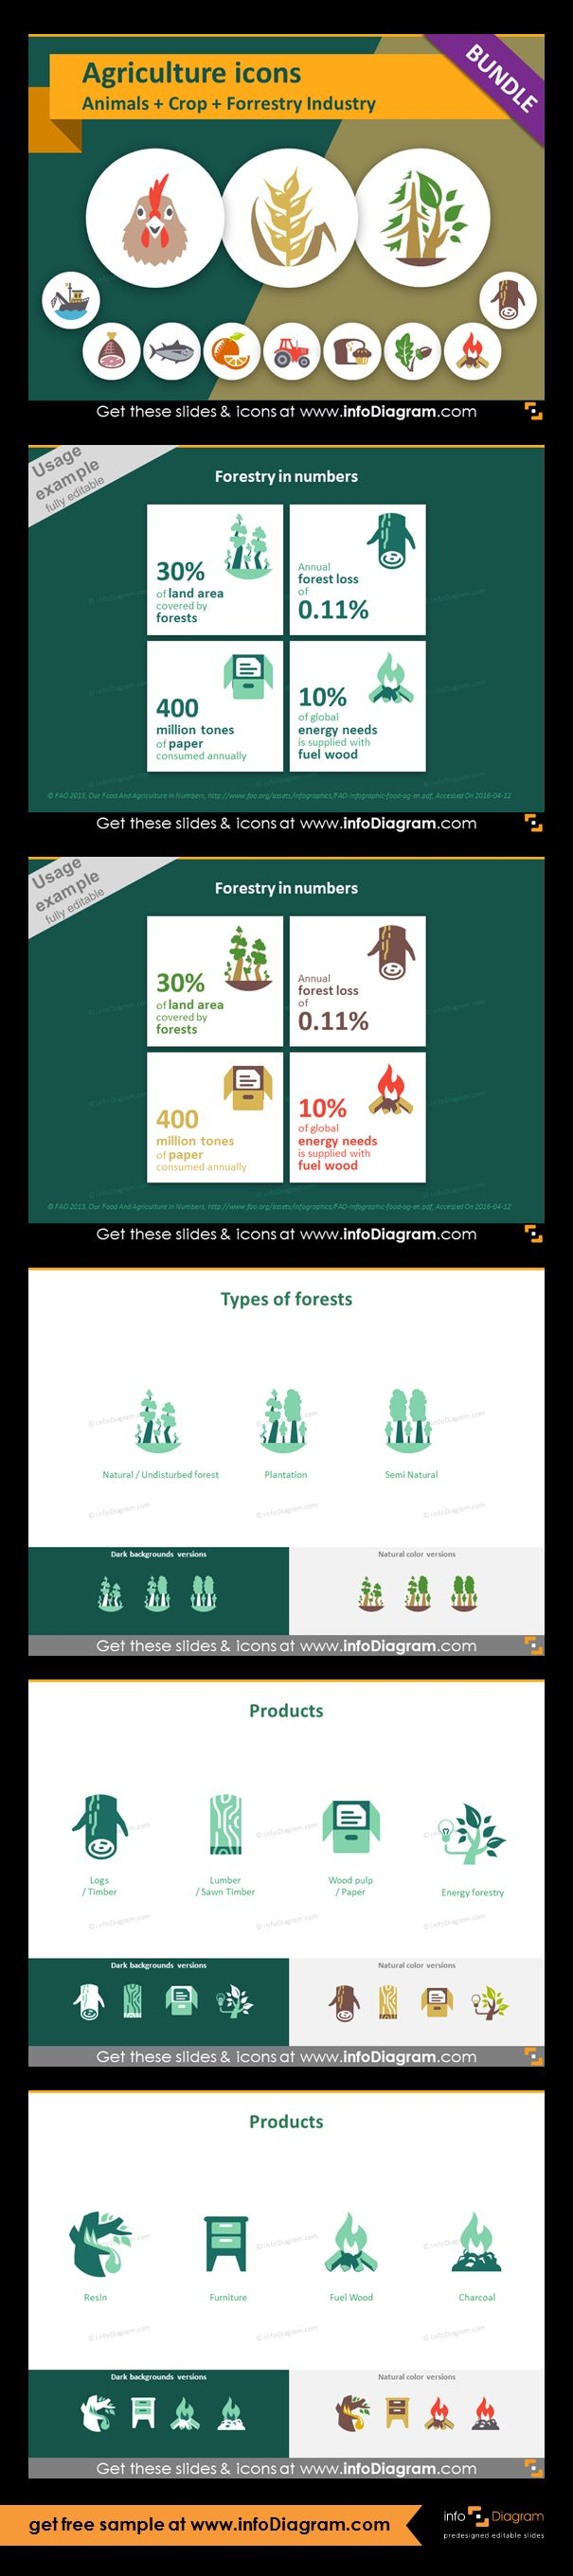 Food and Agriculture icons: Animals, Crop Cultivation, Forestry. All symbols in simple flat style, suitable for Metro UI style graphics. Icons provided in 5 versions.  Infographics with forestry statistics. Icons showing types of trees and forests. Graphics of: softwoods, hardwoods, mixed forest, undisturbed forest, plantation, semi natural forest. Products from forestry and wood industry: logs, lumber, paper, energy forestry, resin, furniture, fuel wood, charcoal.